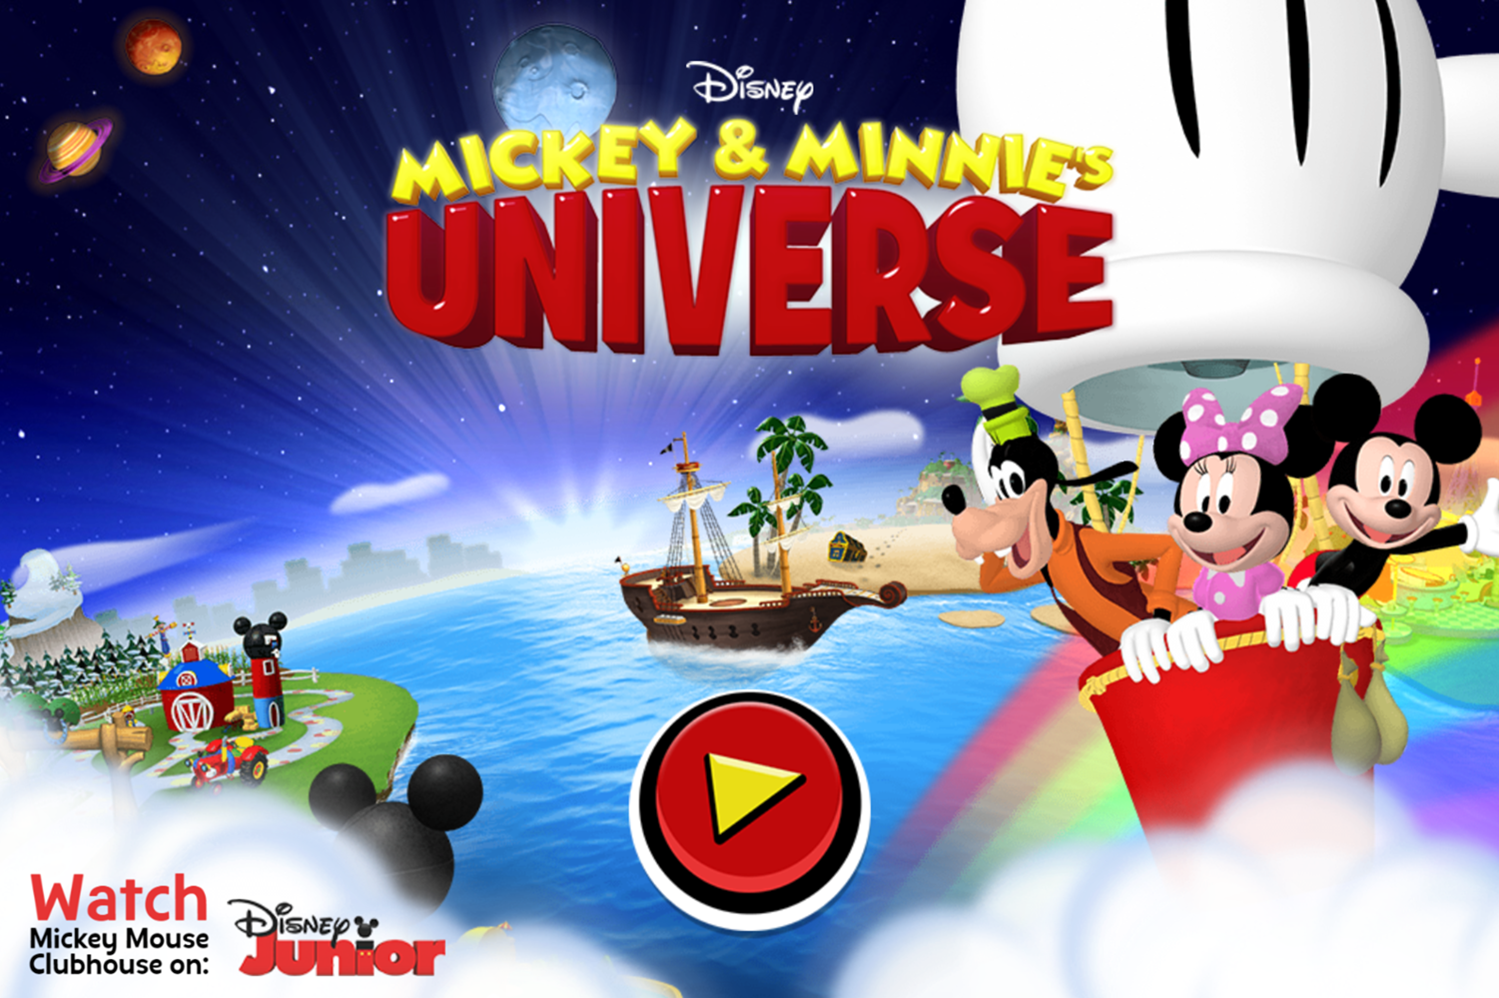 Mickey and Minnie's Universe Welcome Screen Screenshot.